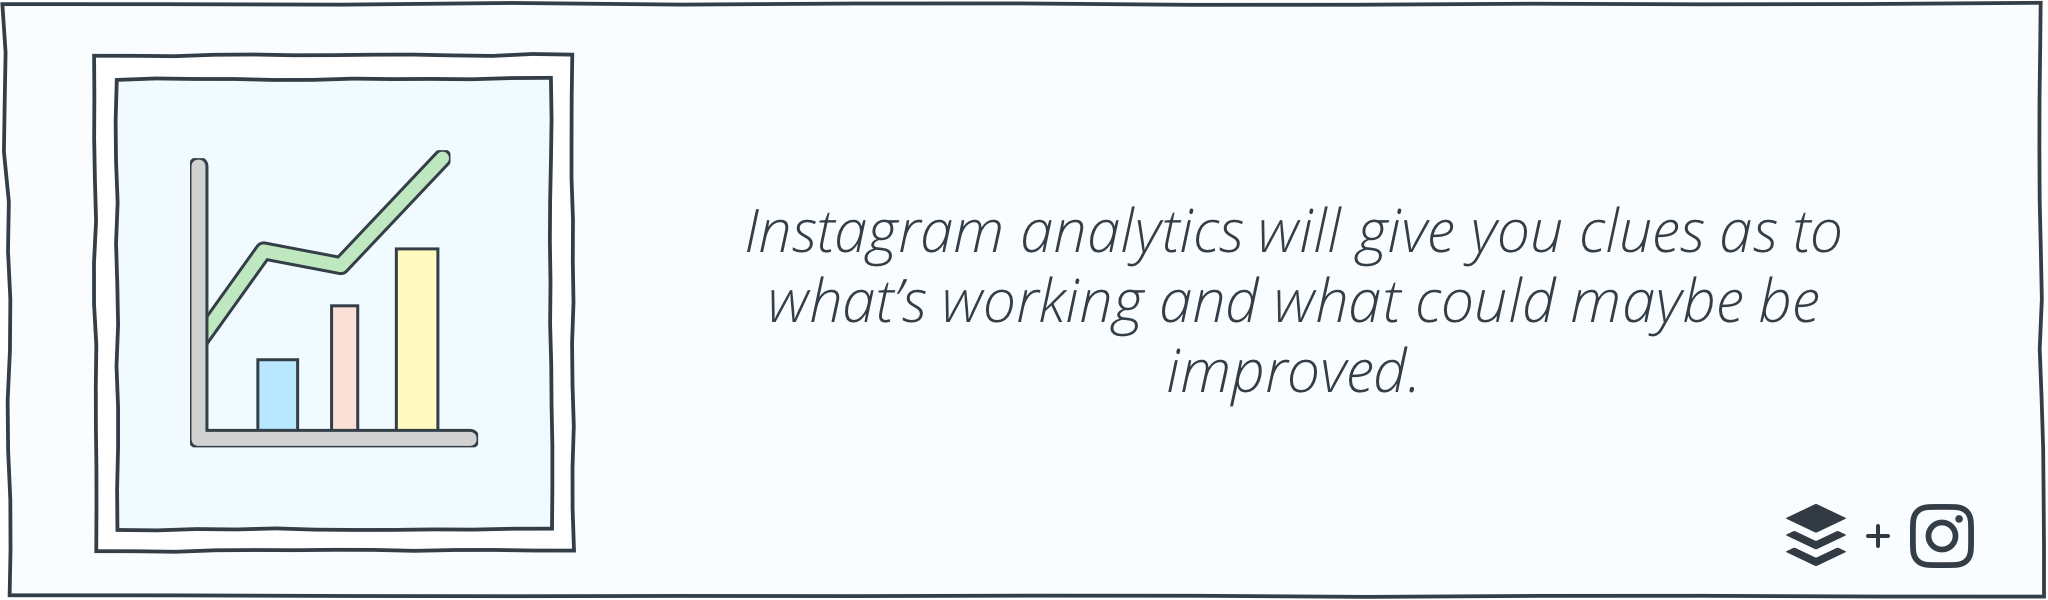 IG-analytics@2x